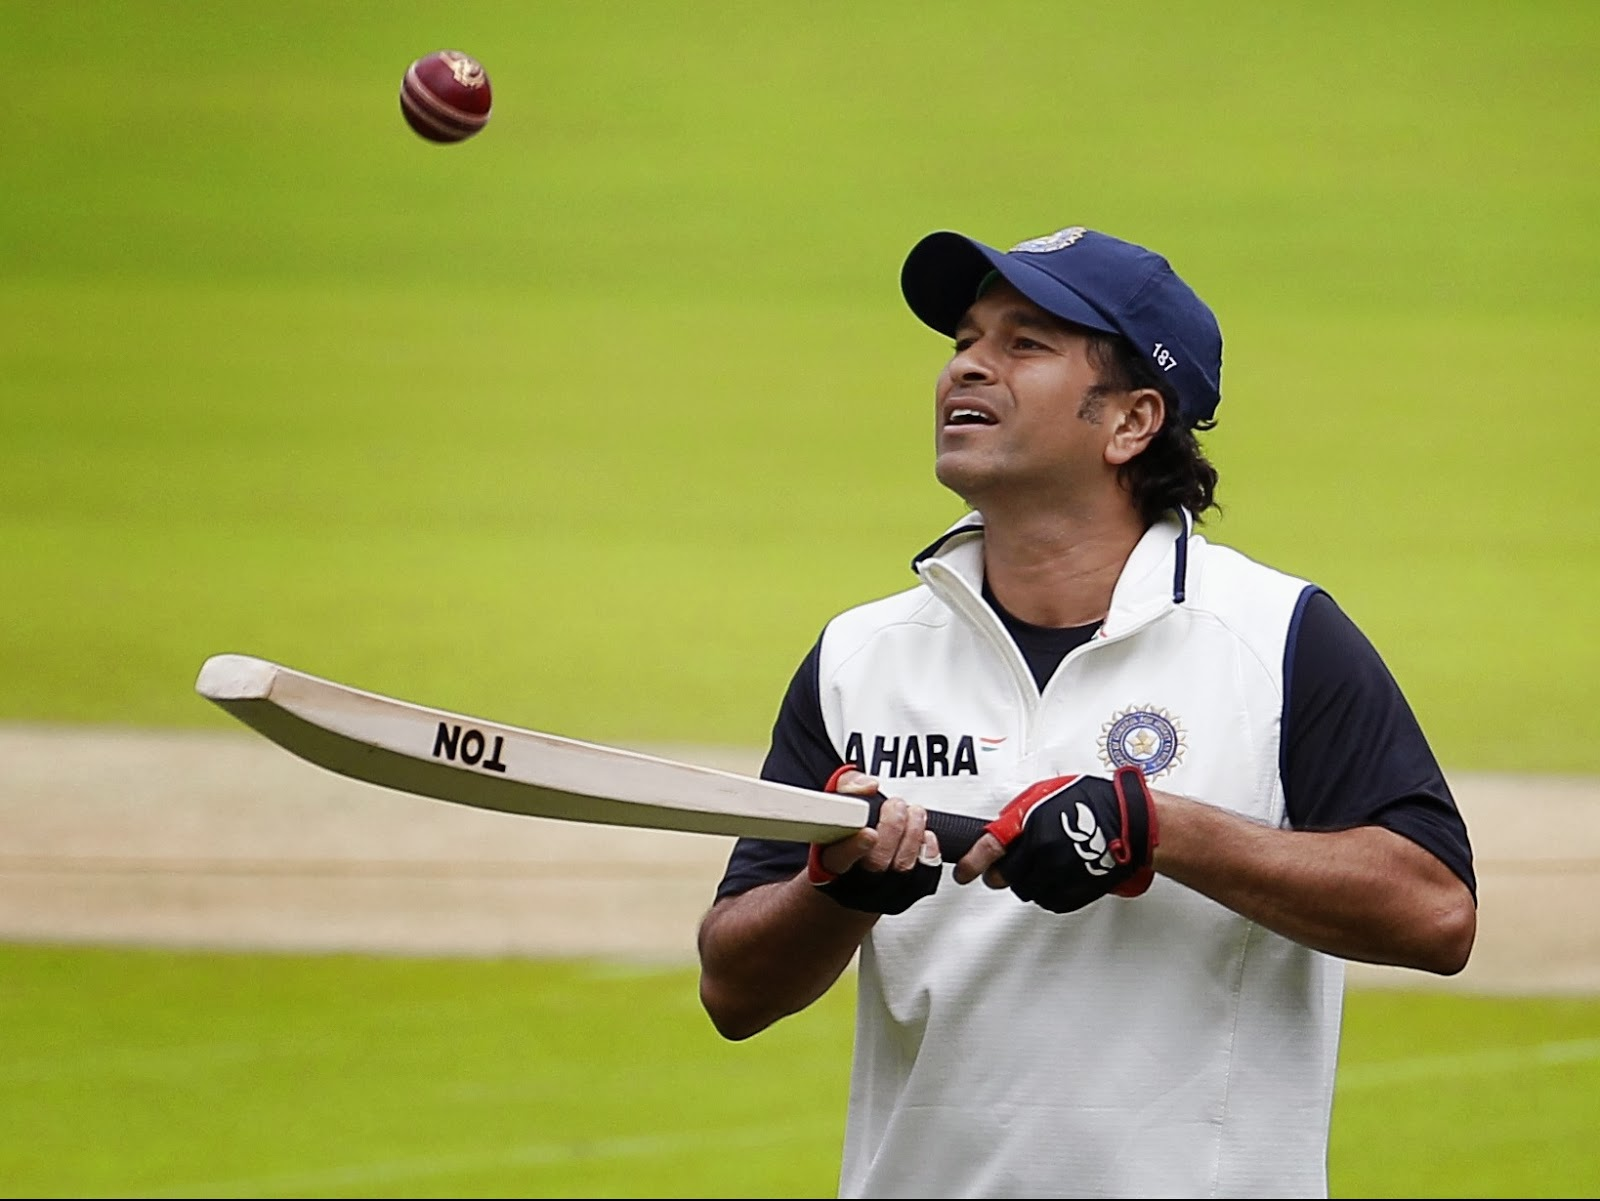 essay on sachin tendulkar in hindi Essay | निबन्ध is a channel developed especially for online free essays, articles, speeches, debates, biographies, stories & poems in hindi and english langu.